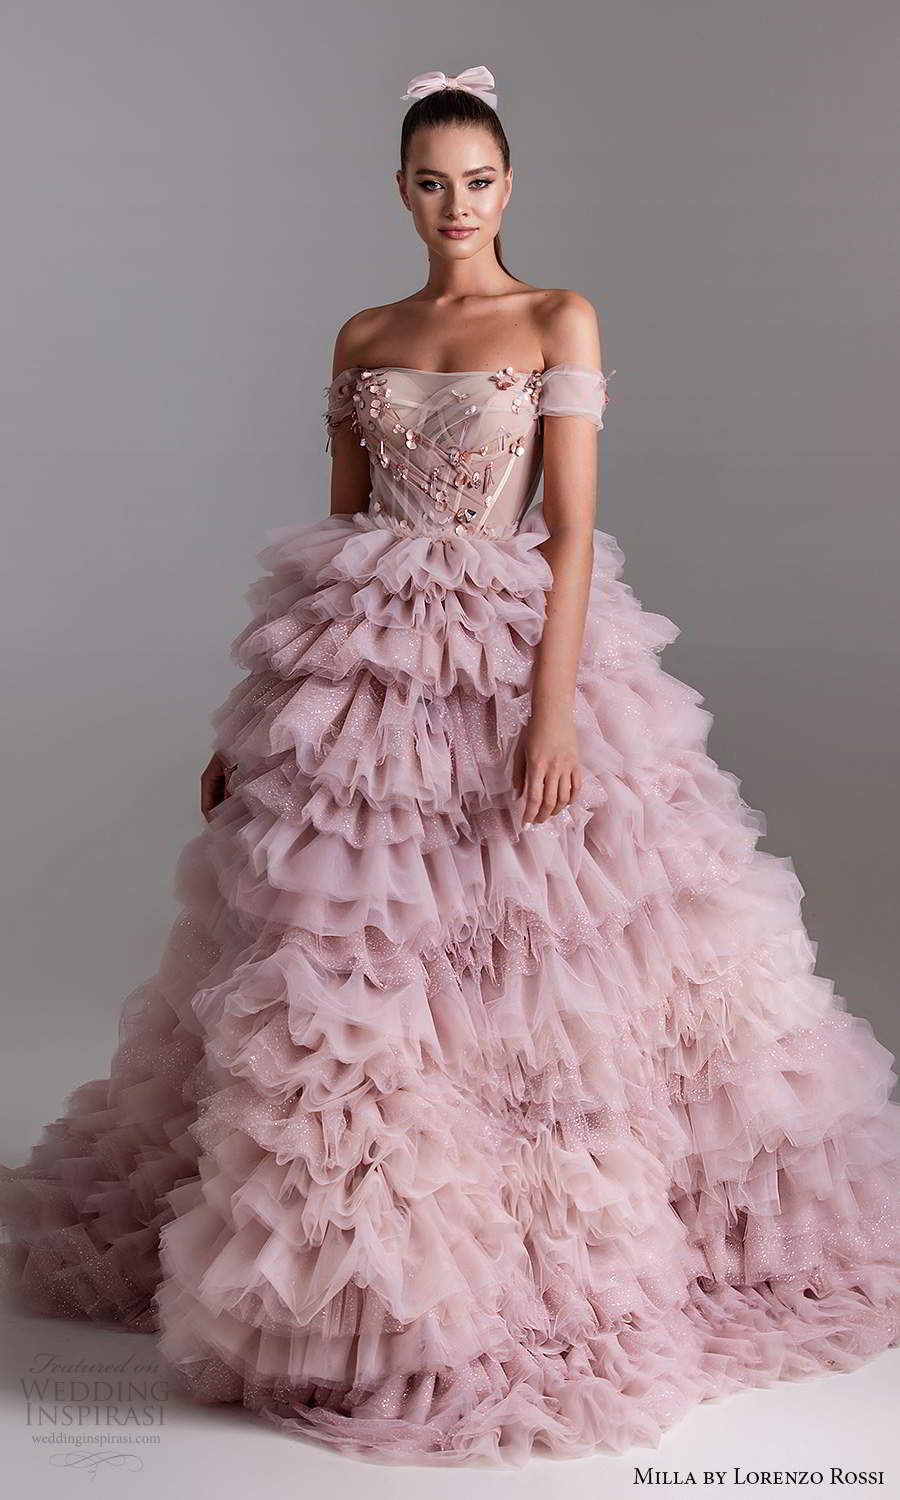 milla by lorenzo rossi 2020 rtw off shoulder straps sweetheart neckline embellished bodice a line ball gown wedding dress ruffle skirt lavender pink (15) fv